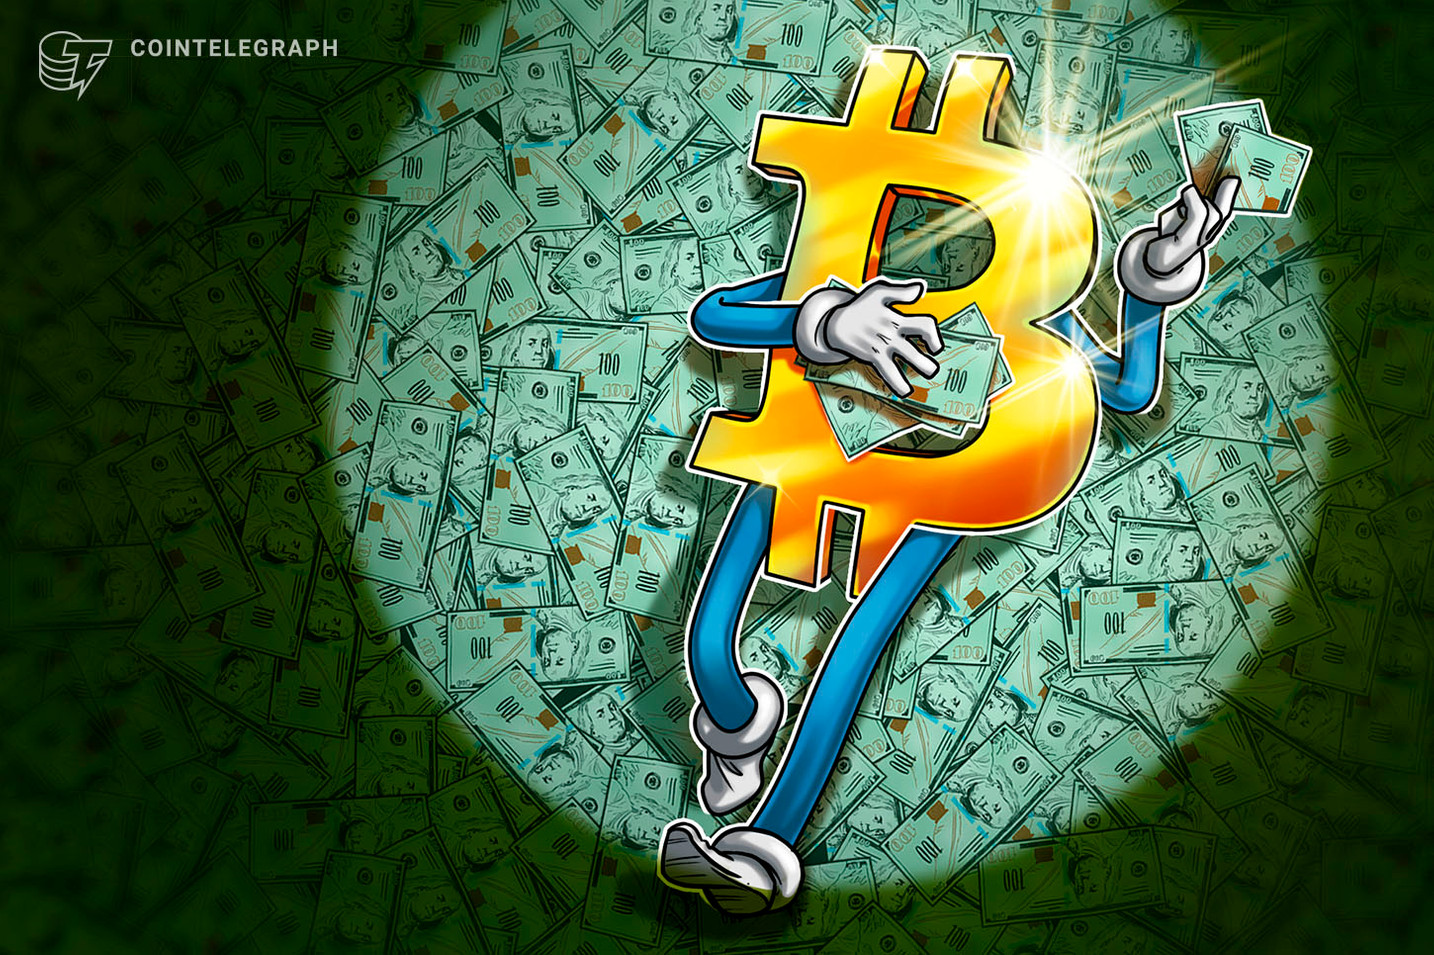 BTC price returns to $50K as Bitcoin bears lose $450M in daily liquidations